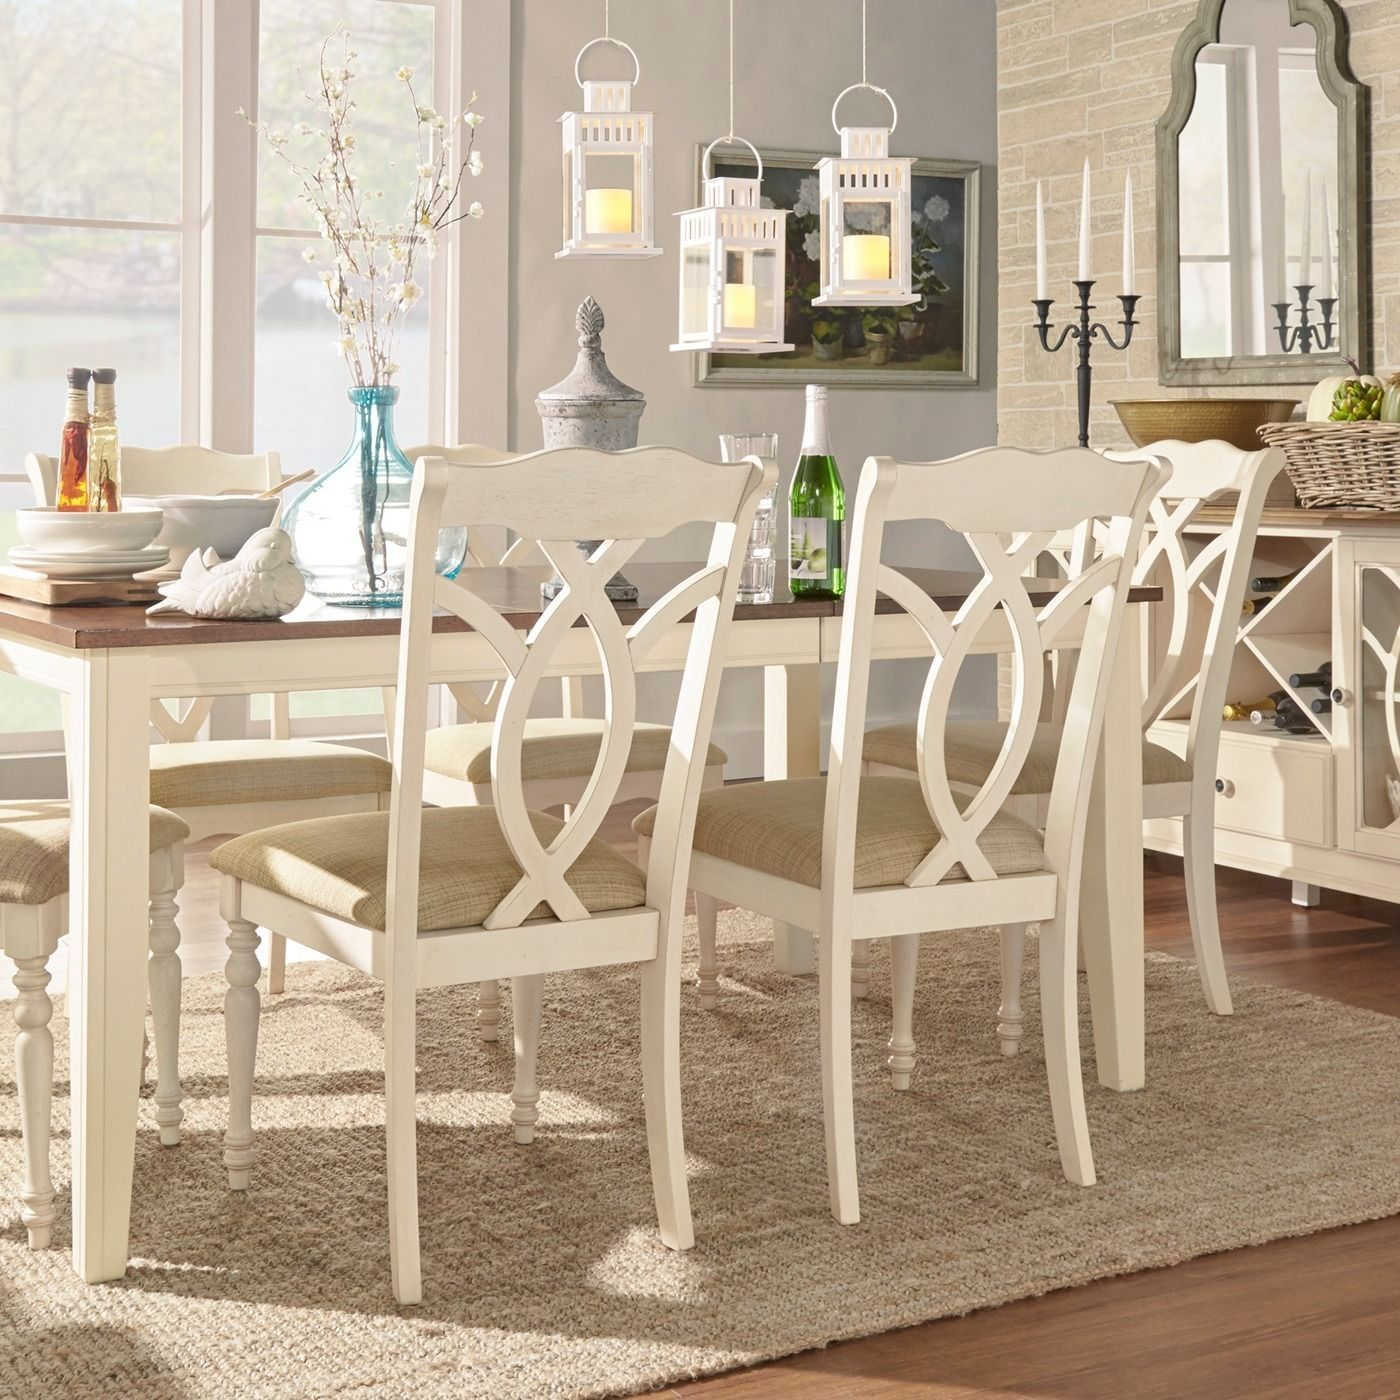 Set Of 4 Country Cream Dining Chairs: Shayne Country Antique White Beige Dining Chairs By